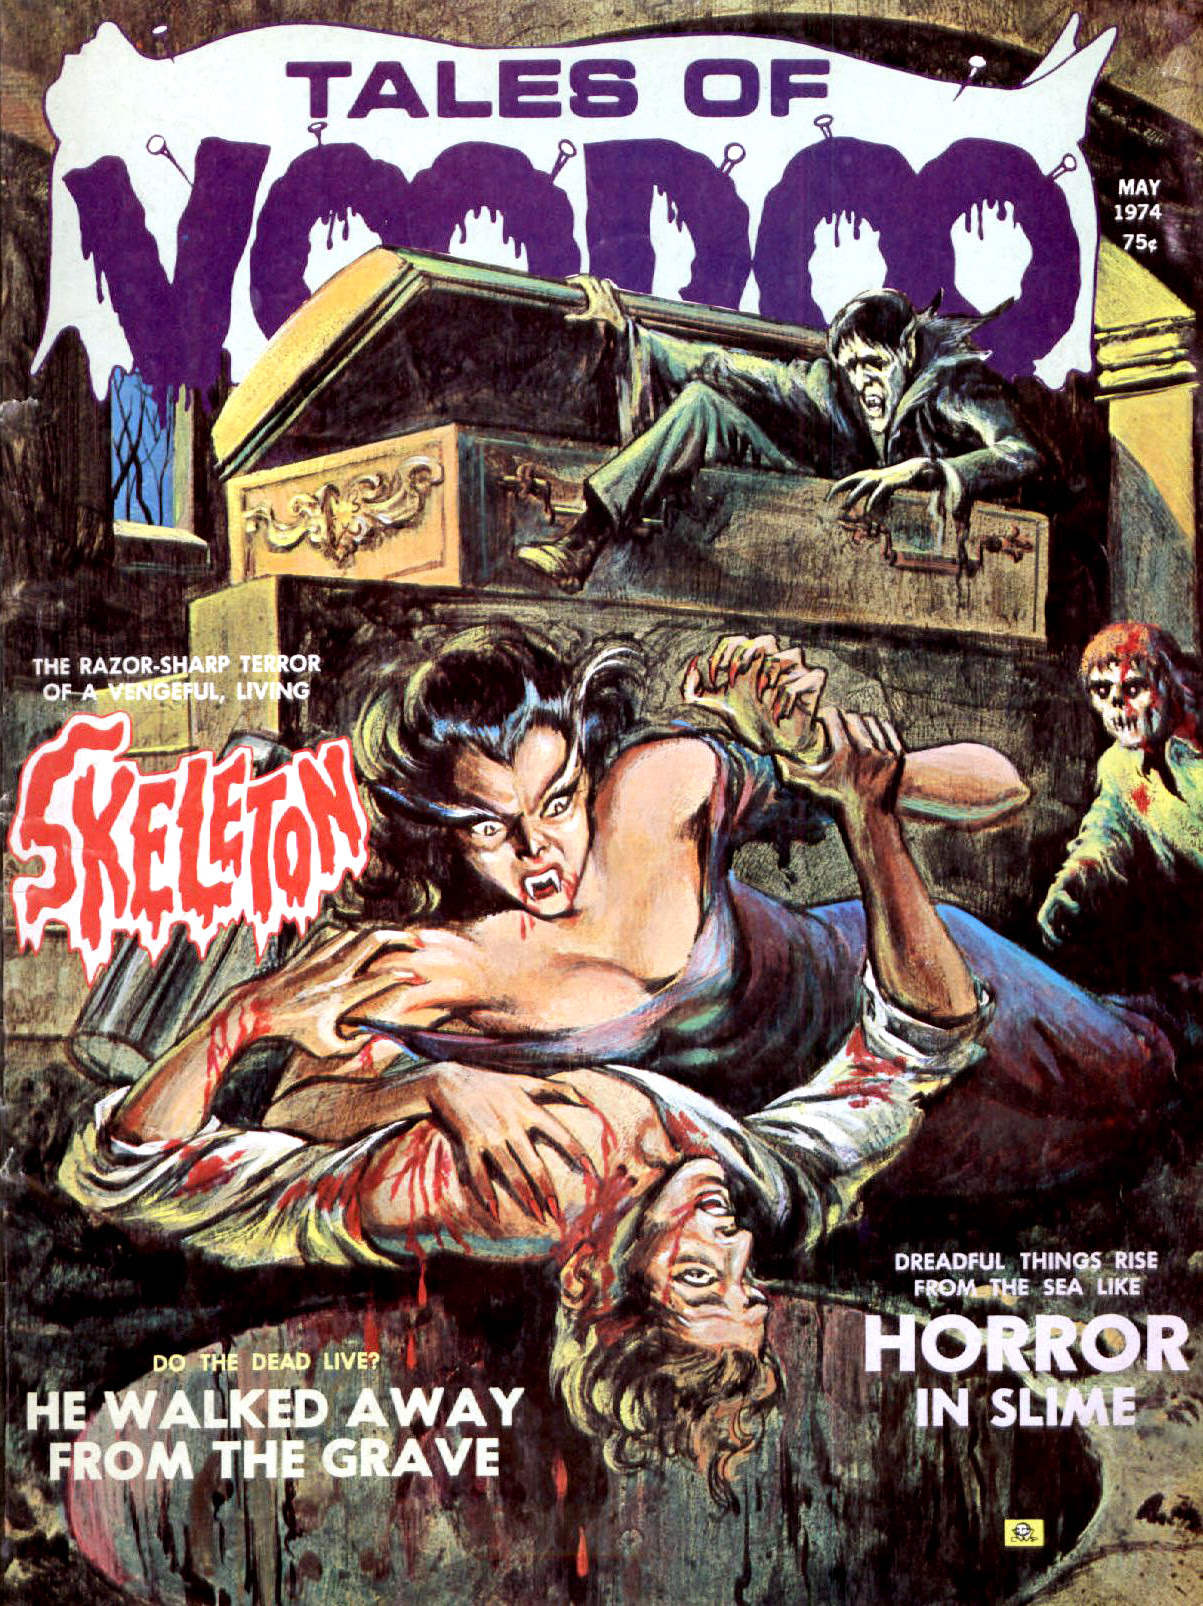 Tales of Voodoo Vol. 7 #3 (Eerie Publications 1974